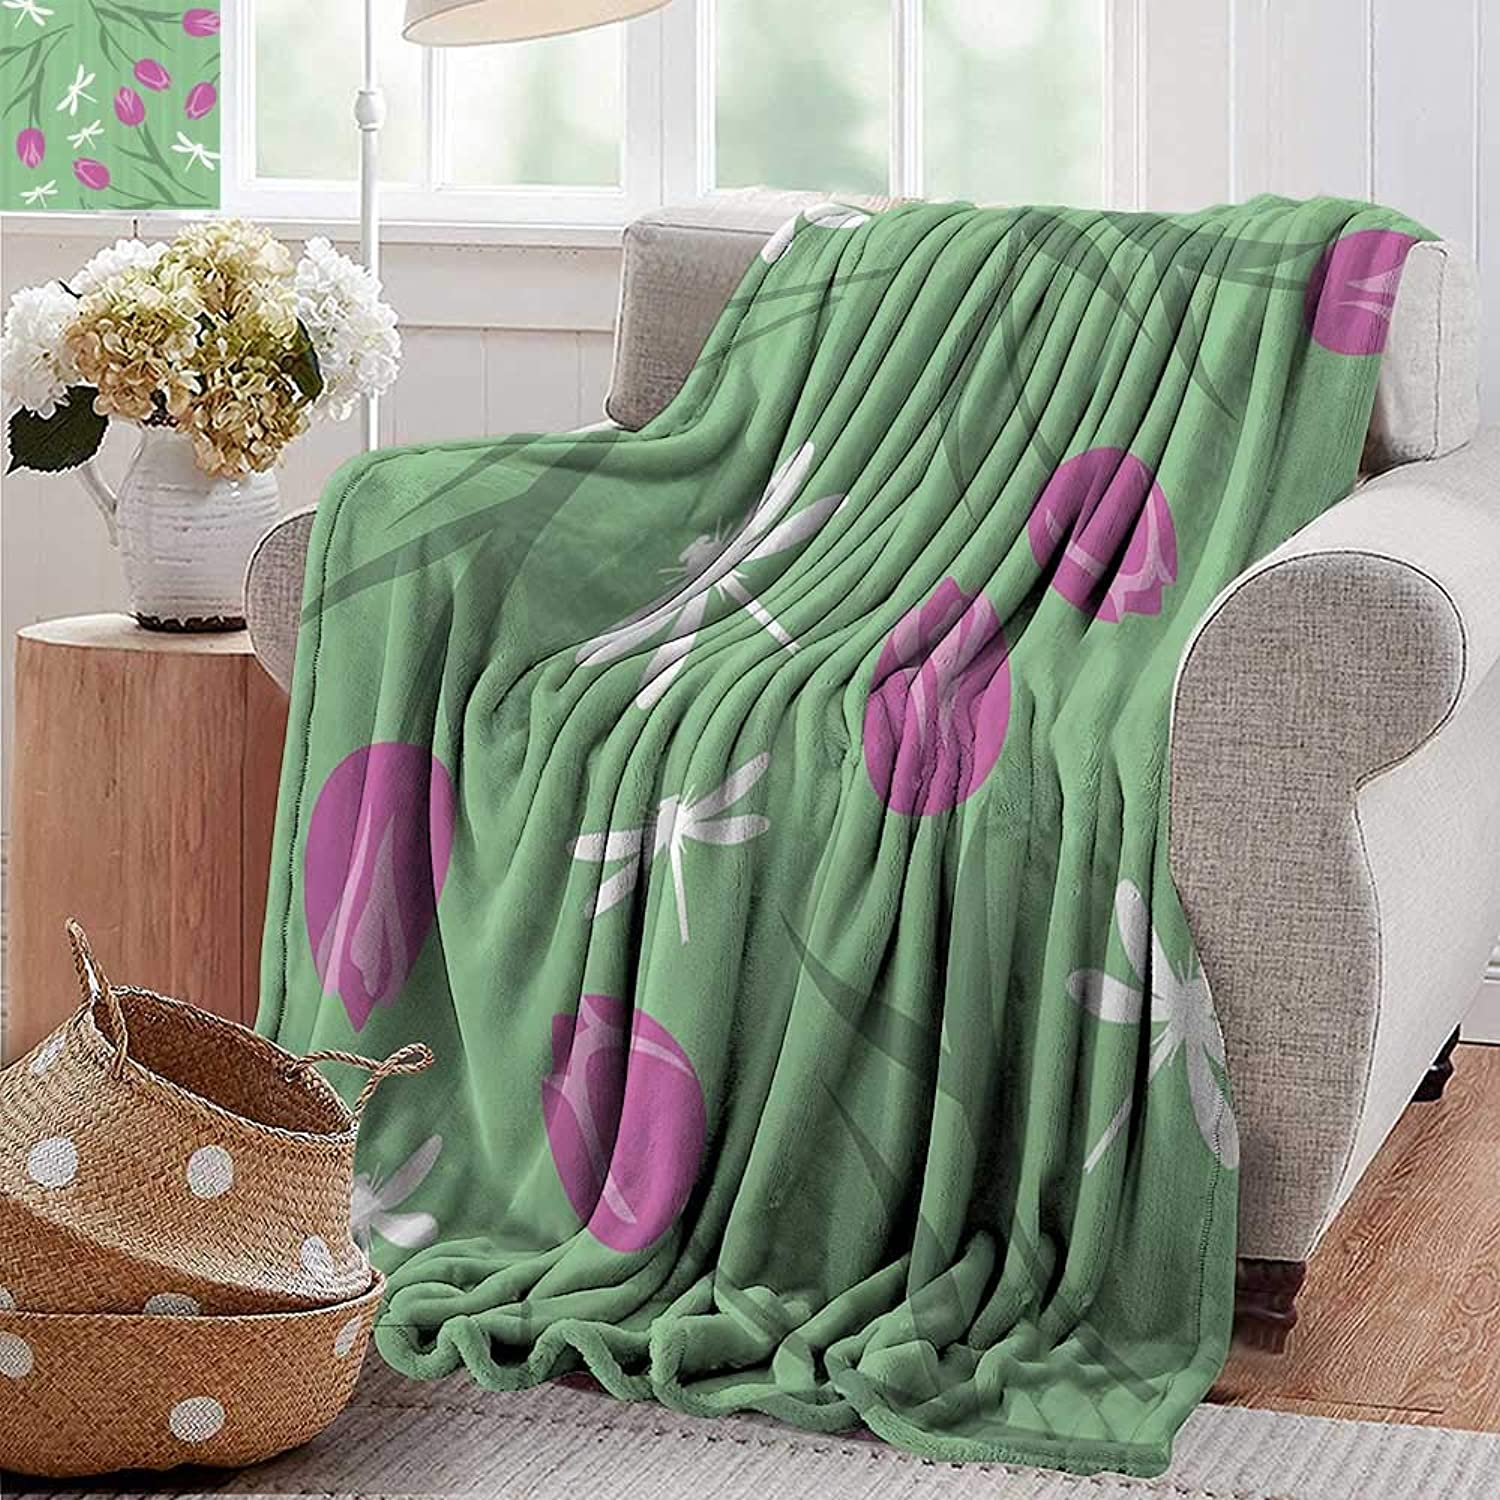 PearlRolan Weighted Blanket,Country Decor,Tulips and Dragonflies Flower Silhouettes Old English Pastel Stylized Pattern Graphic,Green Pink,Indoor Outdoor, Comfortable for All Seasons 50 x60